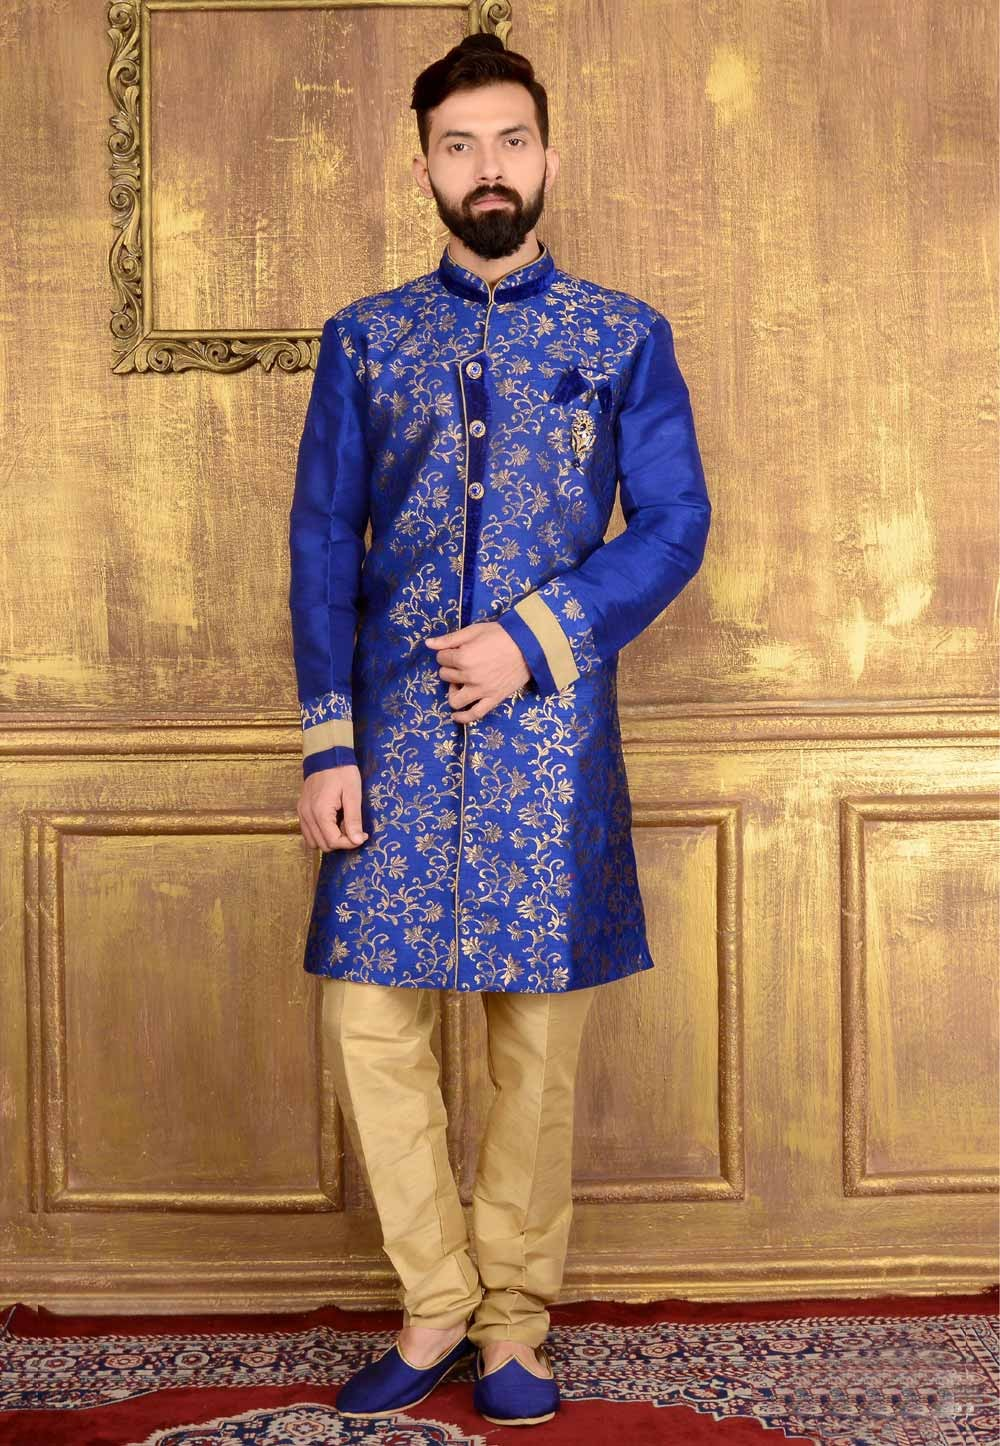 Exquisite Raglan Sleeves Blue Color Jacquard Readymade Kurta For Men's